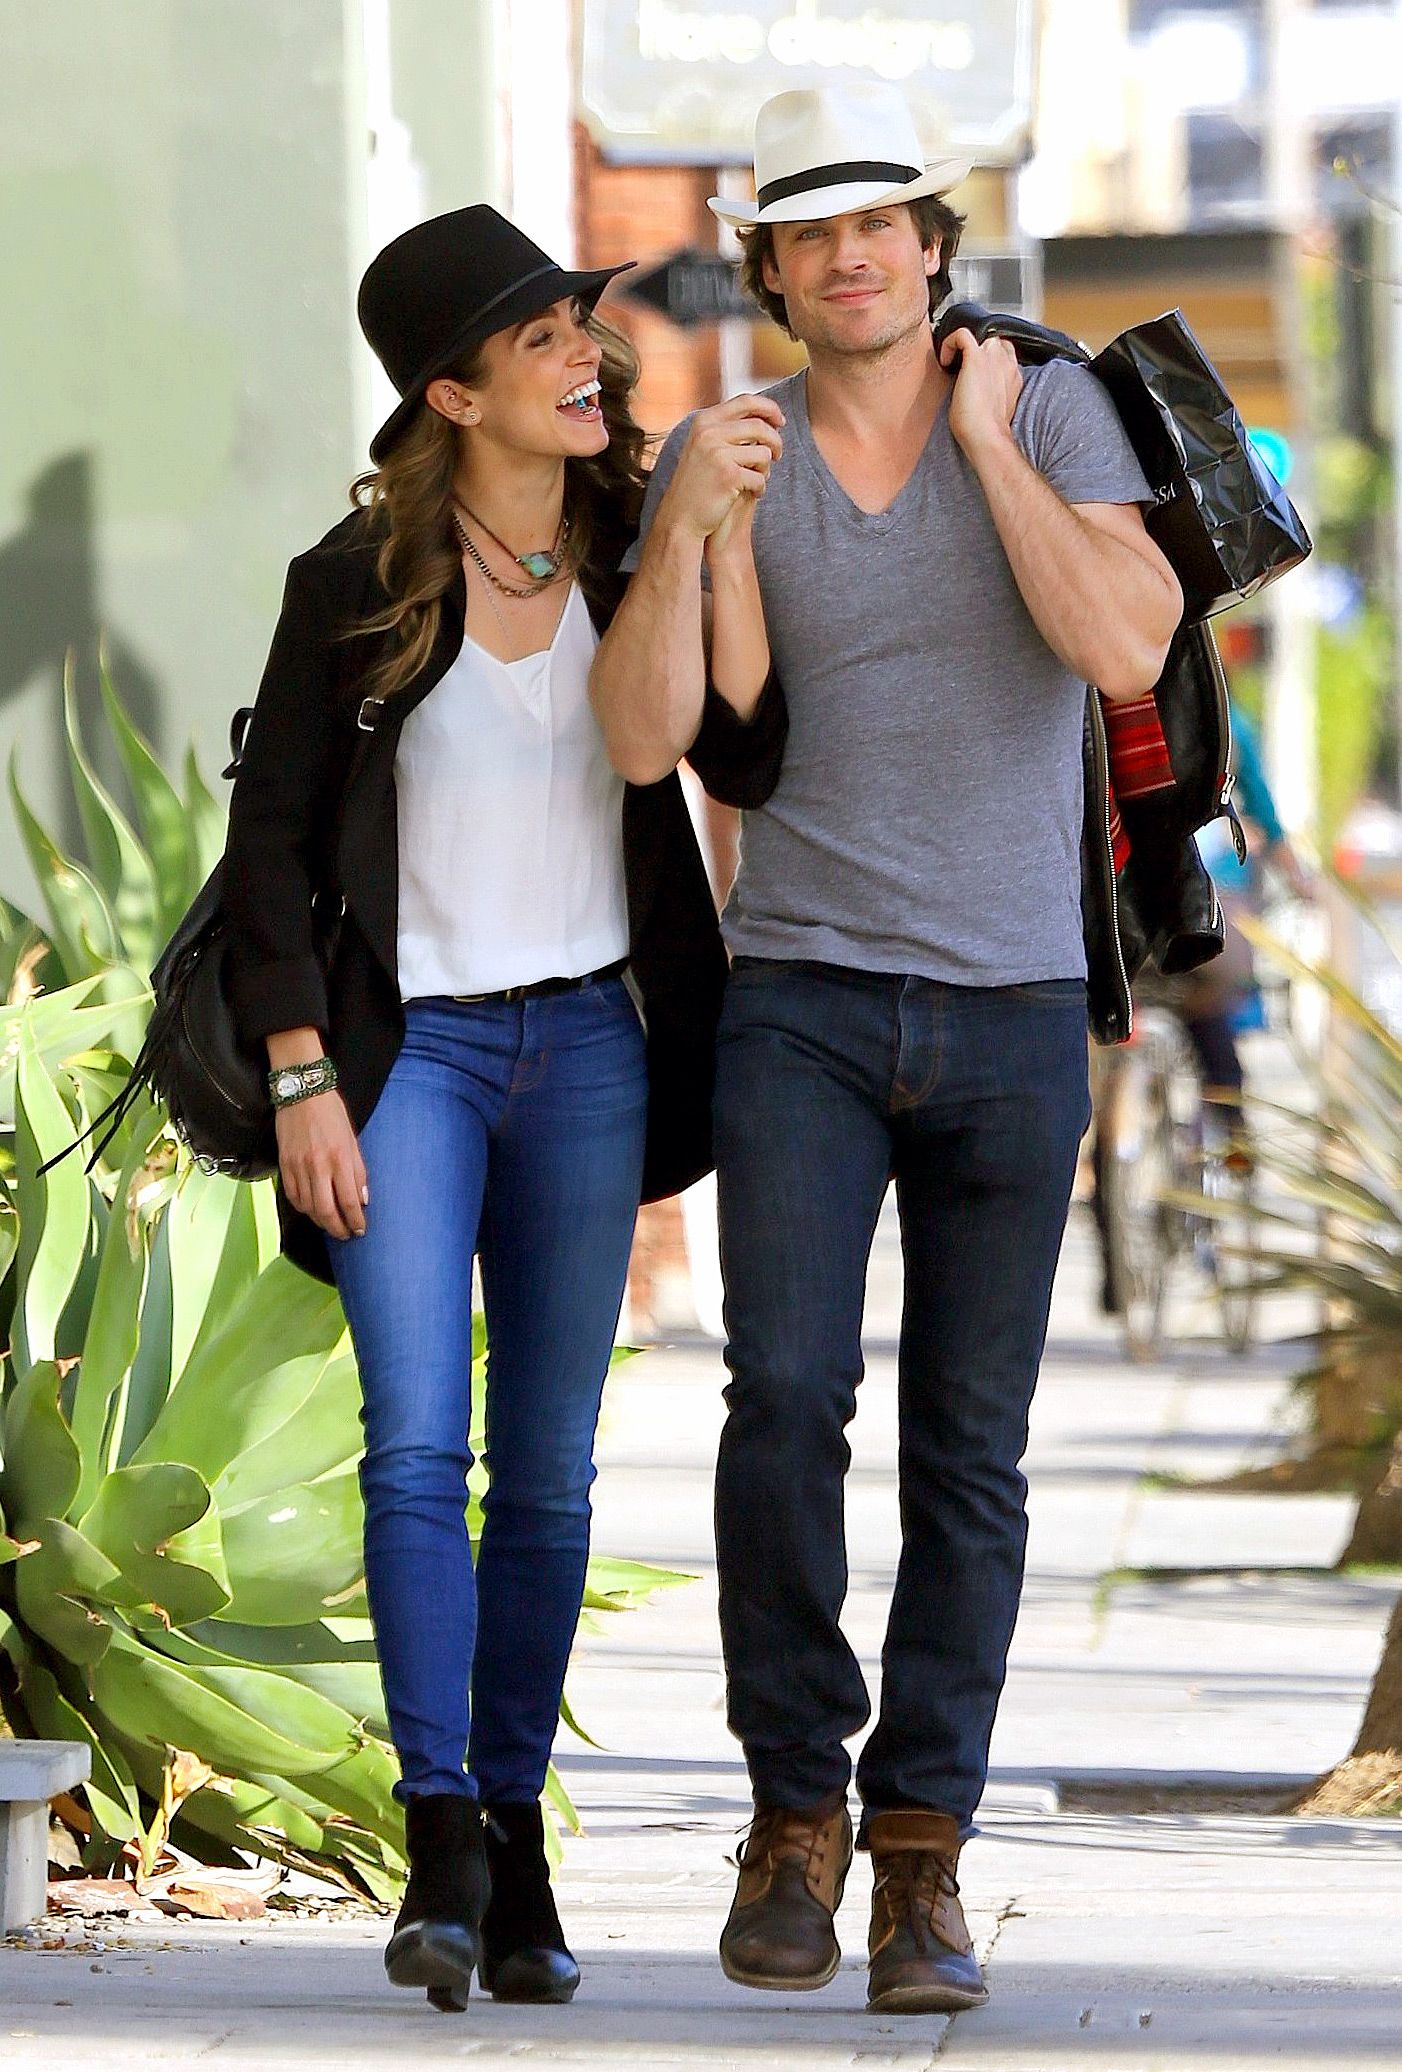 Lovebirds nikki and ian pack on the pda in matching boho street